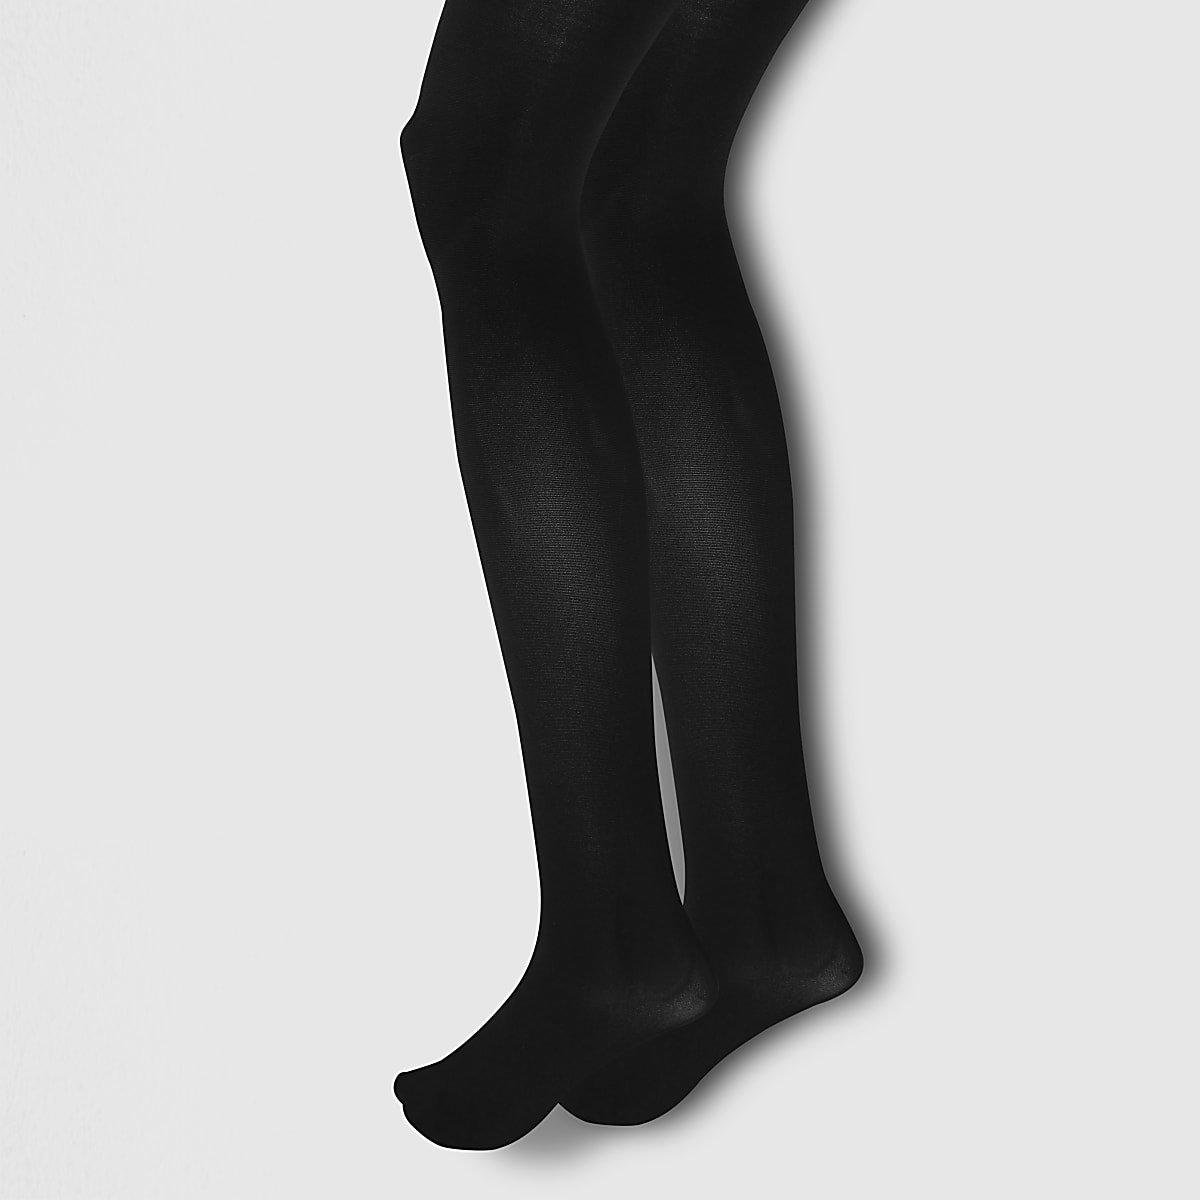 Black opaque tights multipack